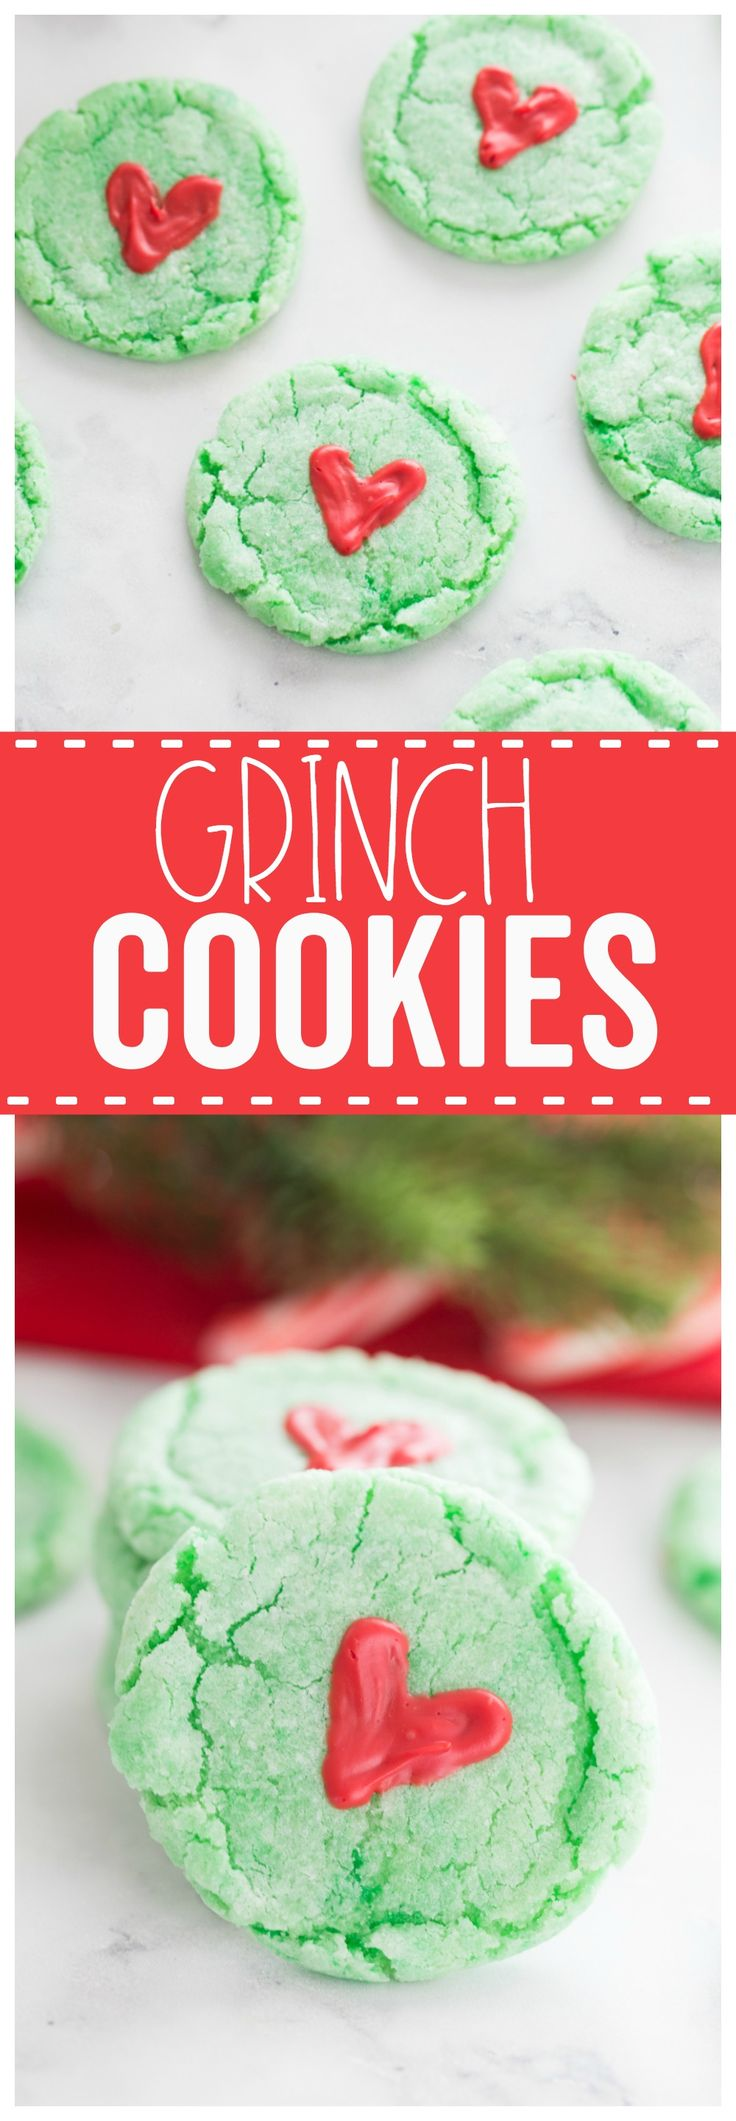 Grinch Cookies: a fun cake mix cookie recipe to help celebrate the Christmas season! Perfect for a friendly Grinchmas party!